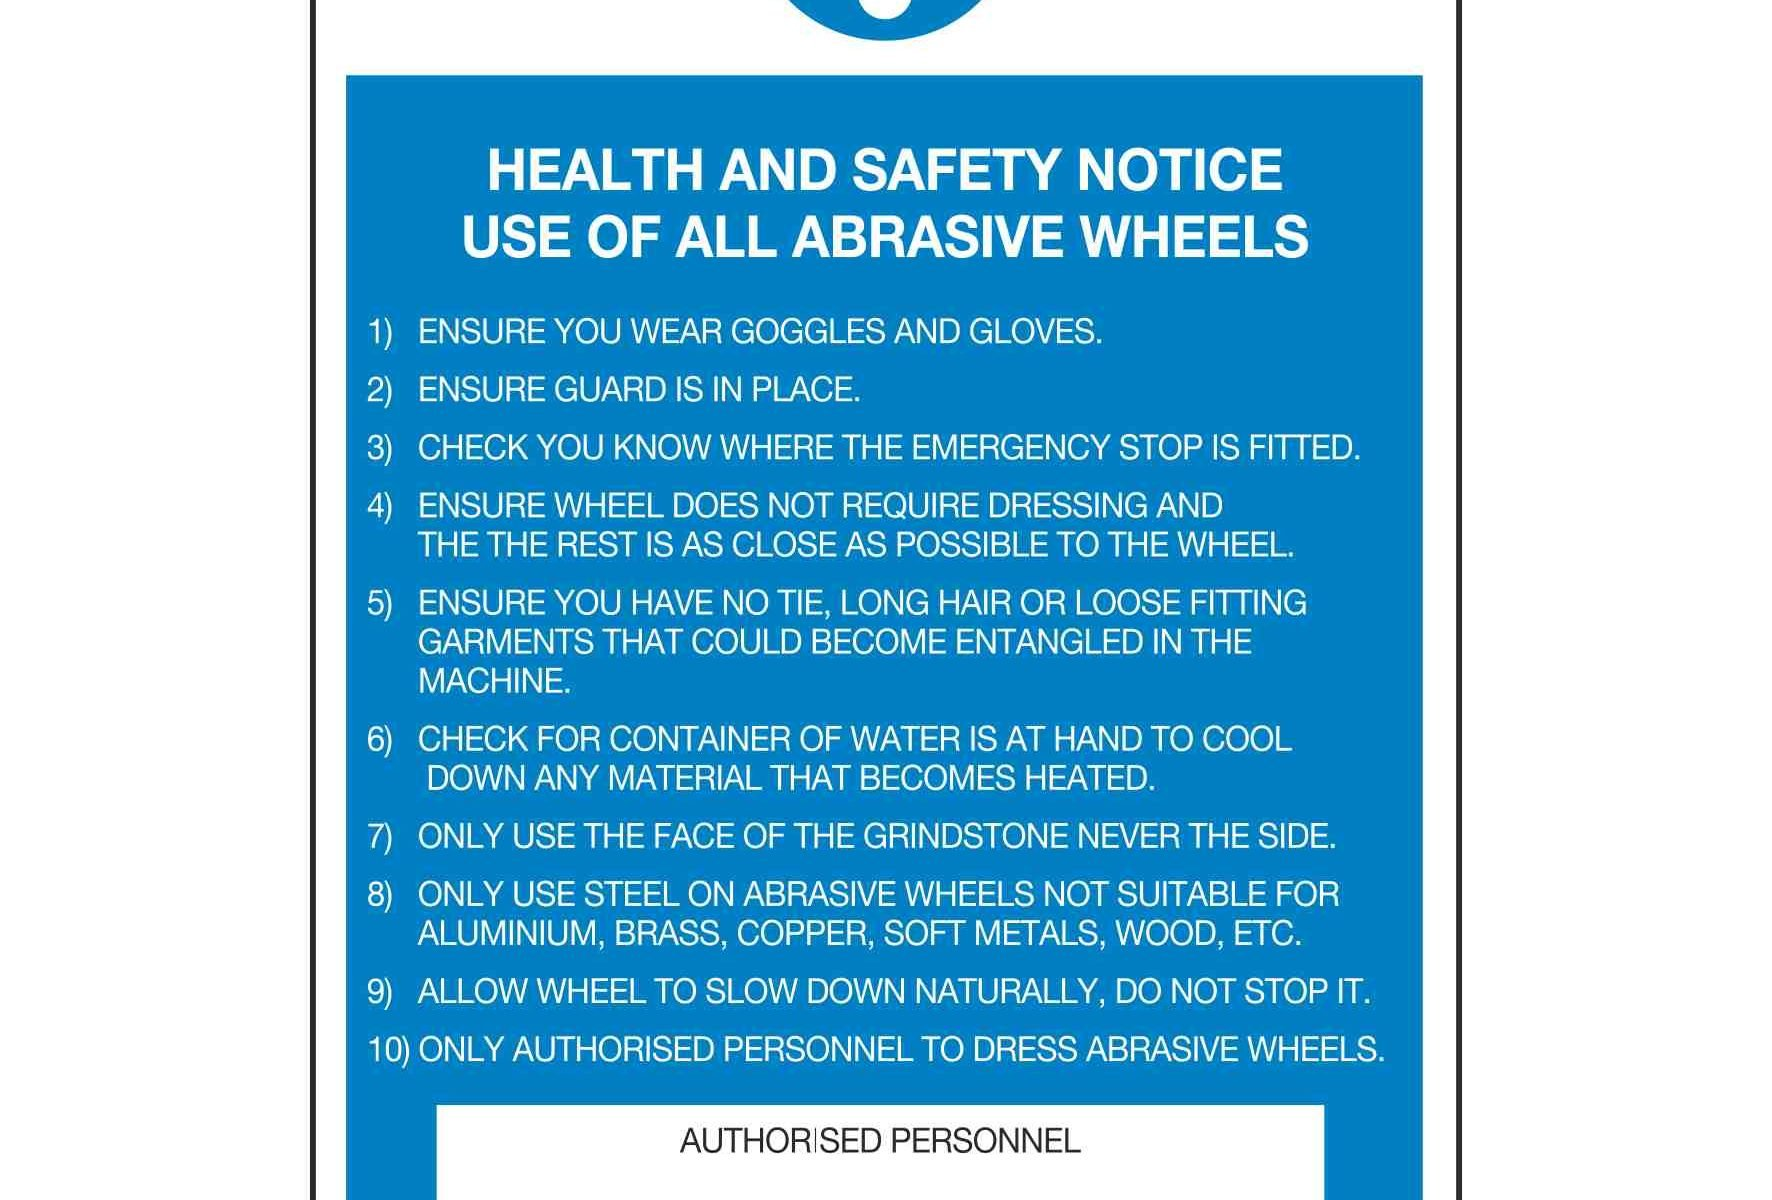 HEALTH AND SAFETY NOTICE USE OF ALL ABRASIVE WHEELS